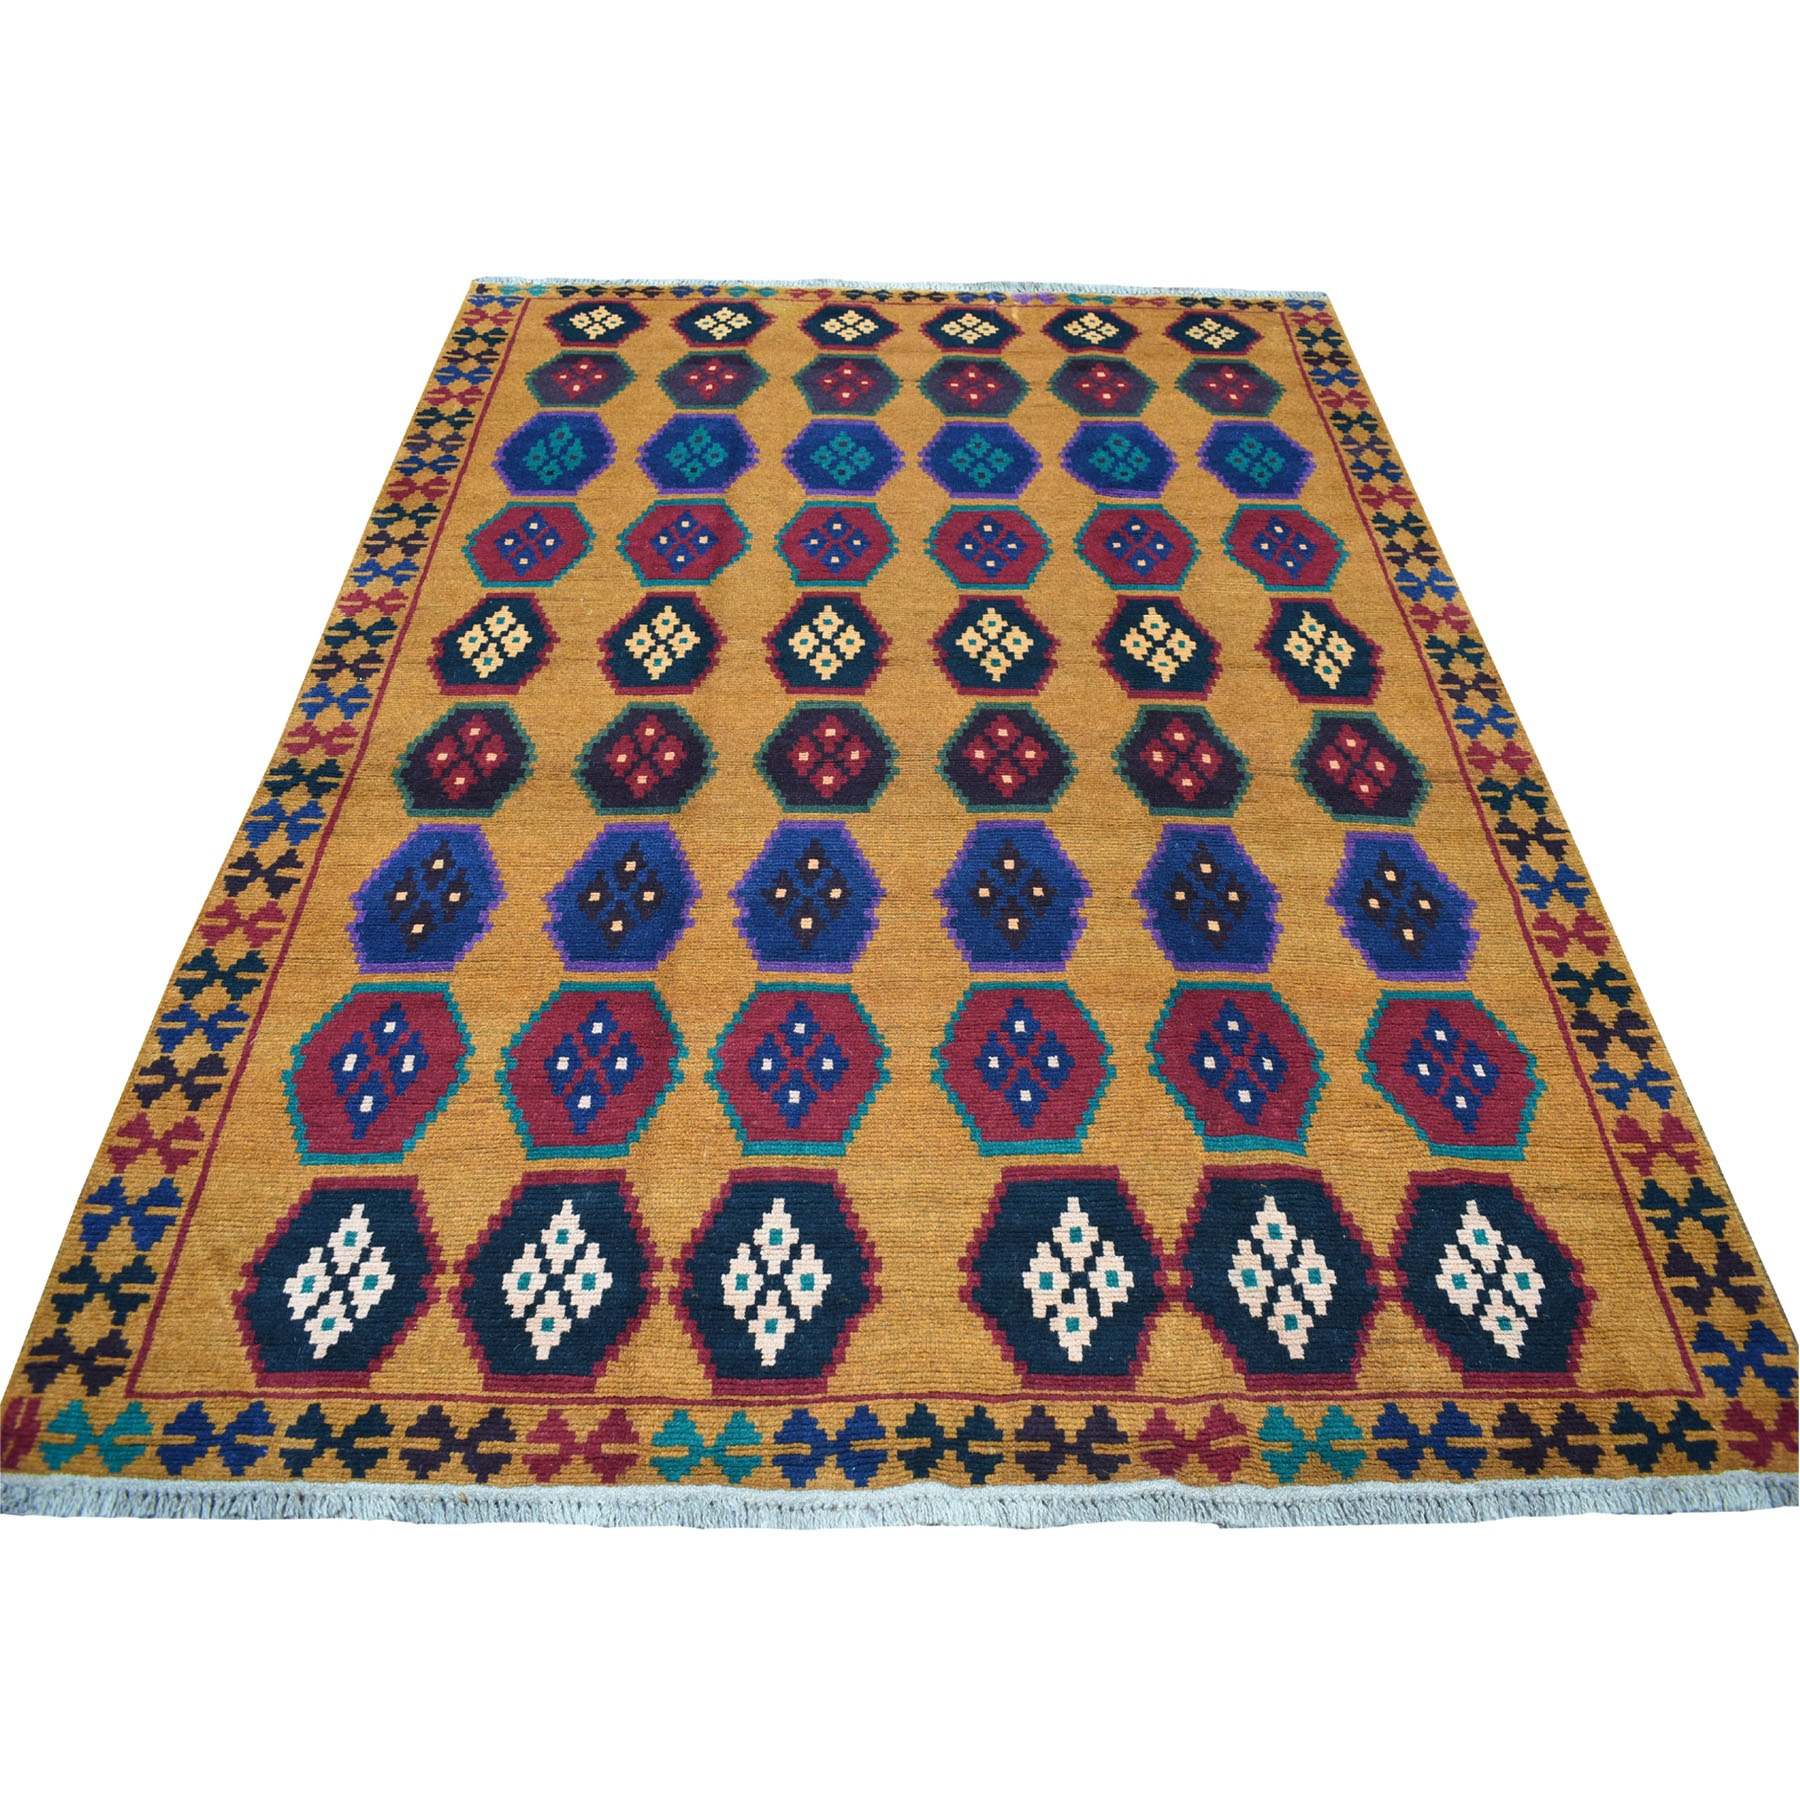 "6'x7'10"" Orange Geometric Design Colorful Afghan Baluch Hand Knotted Pure Wool Oriental Rug"